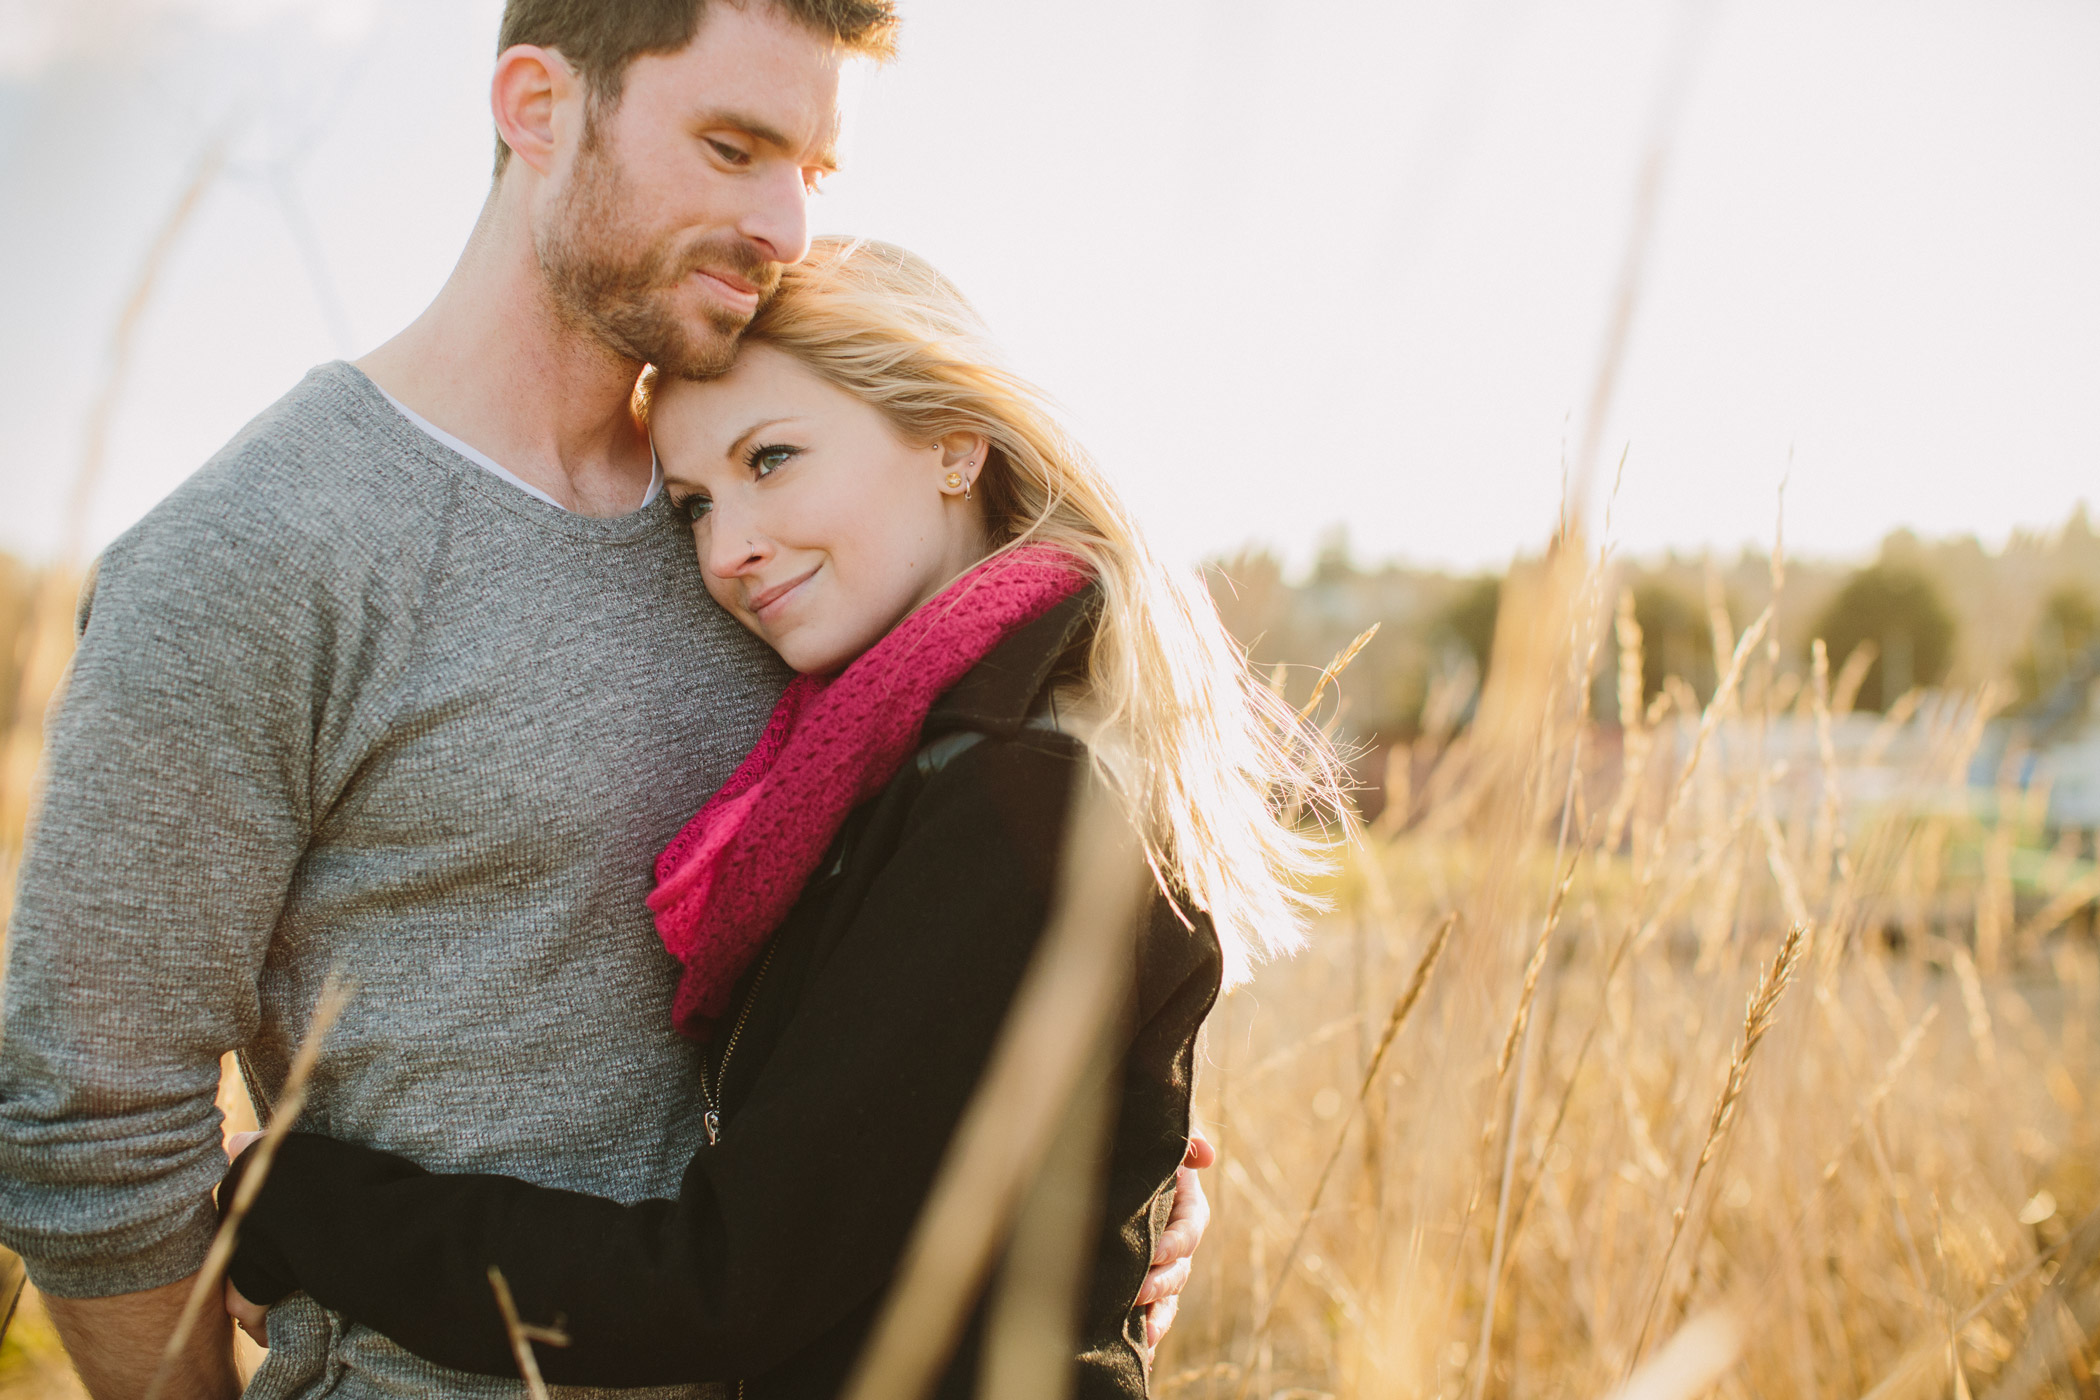 Spanish Banks Couples Session